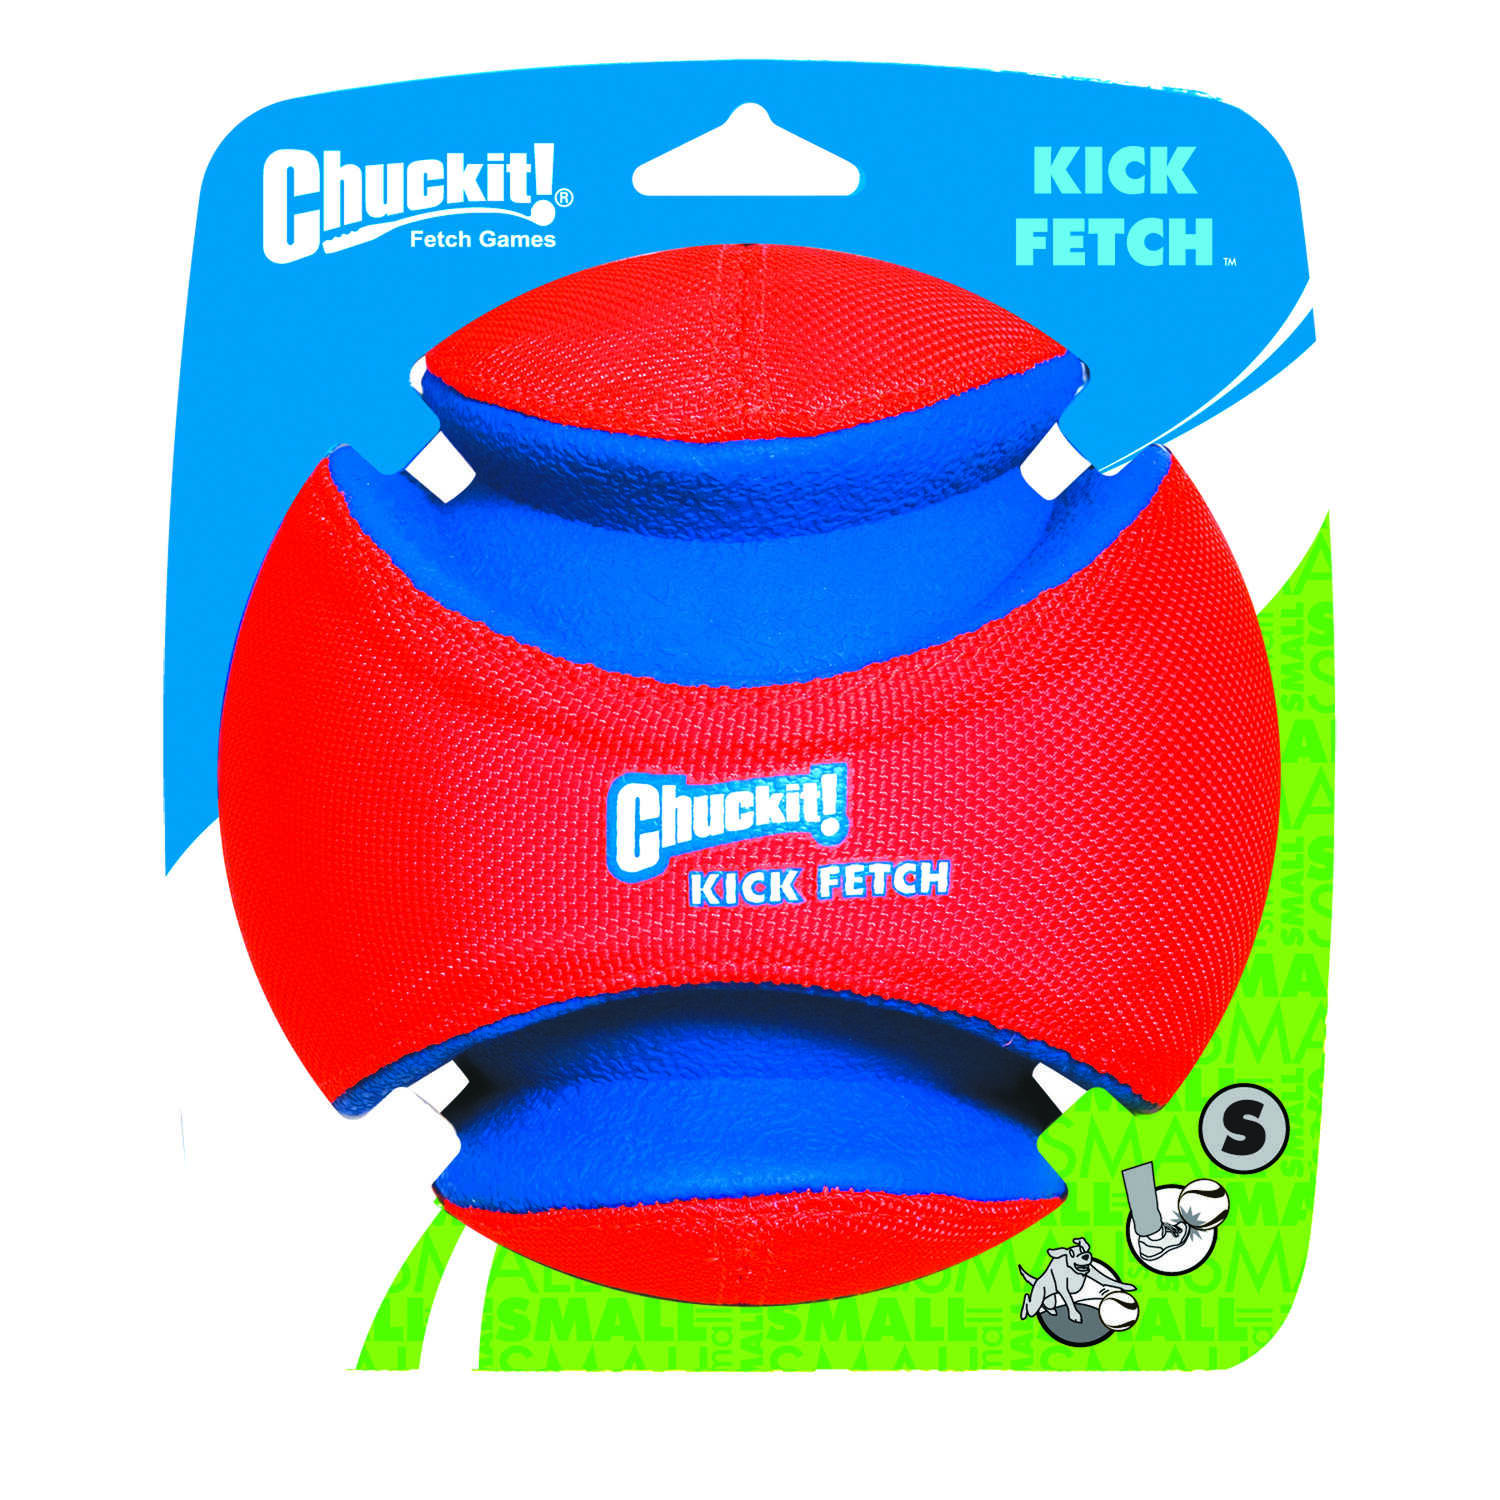 Chuckit!  Kick Fetch  Multicolored  Kick Fetch  Rubber  Ball Dog Toy  Small